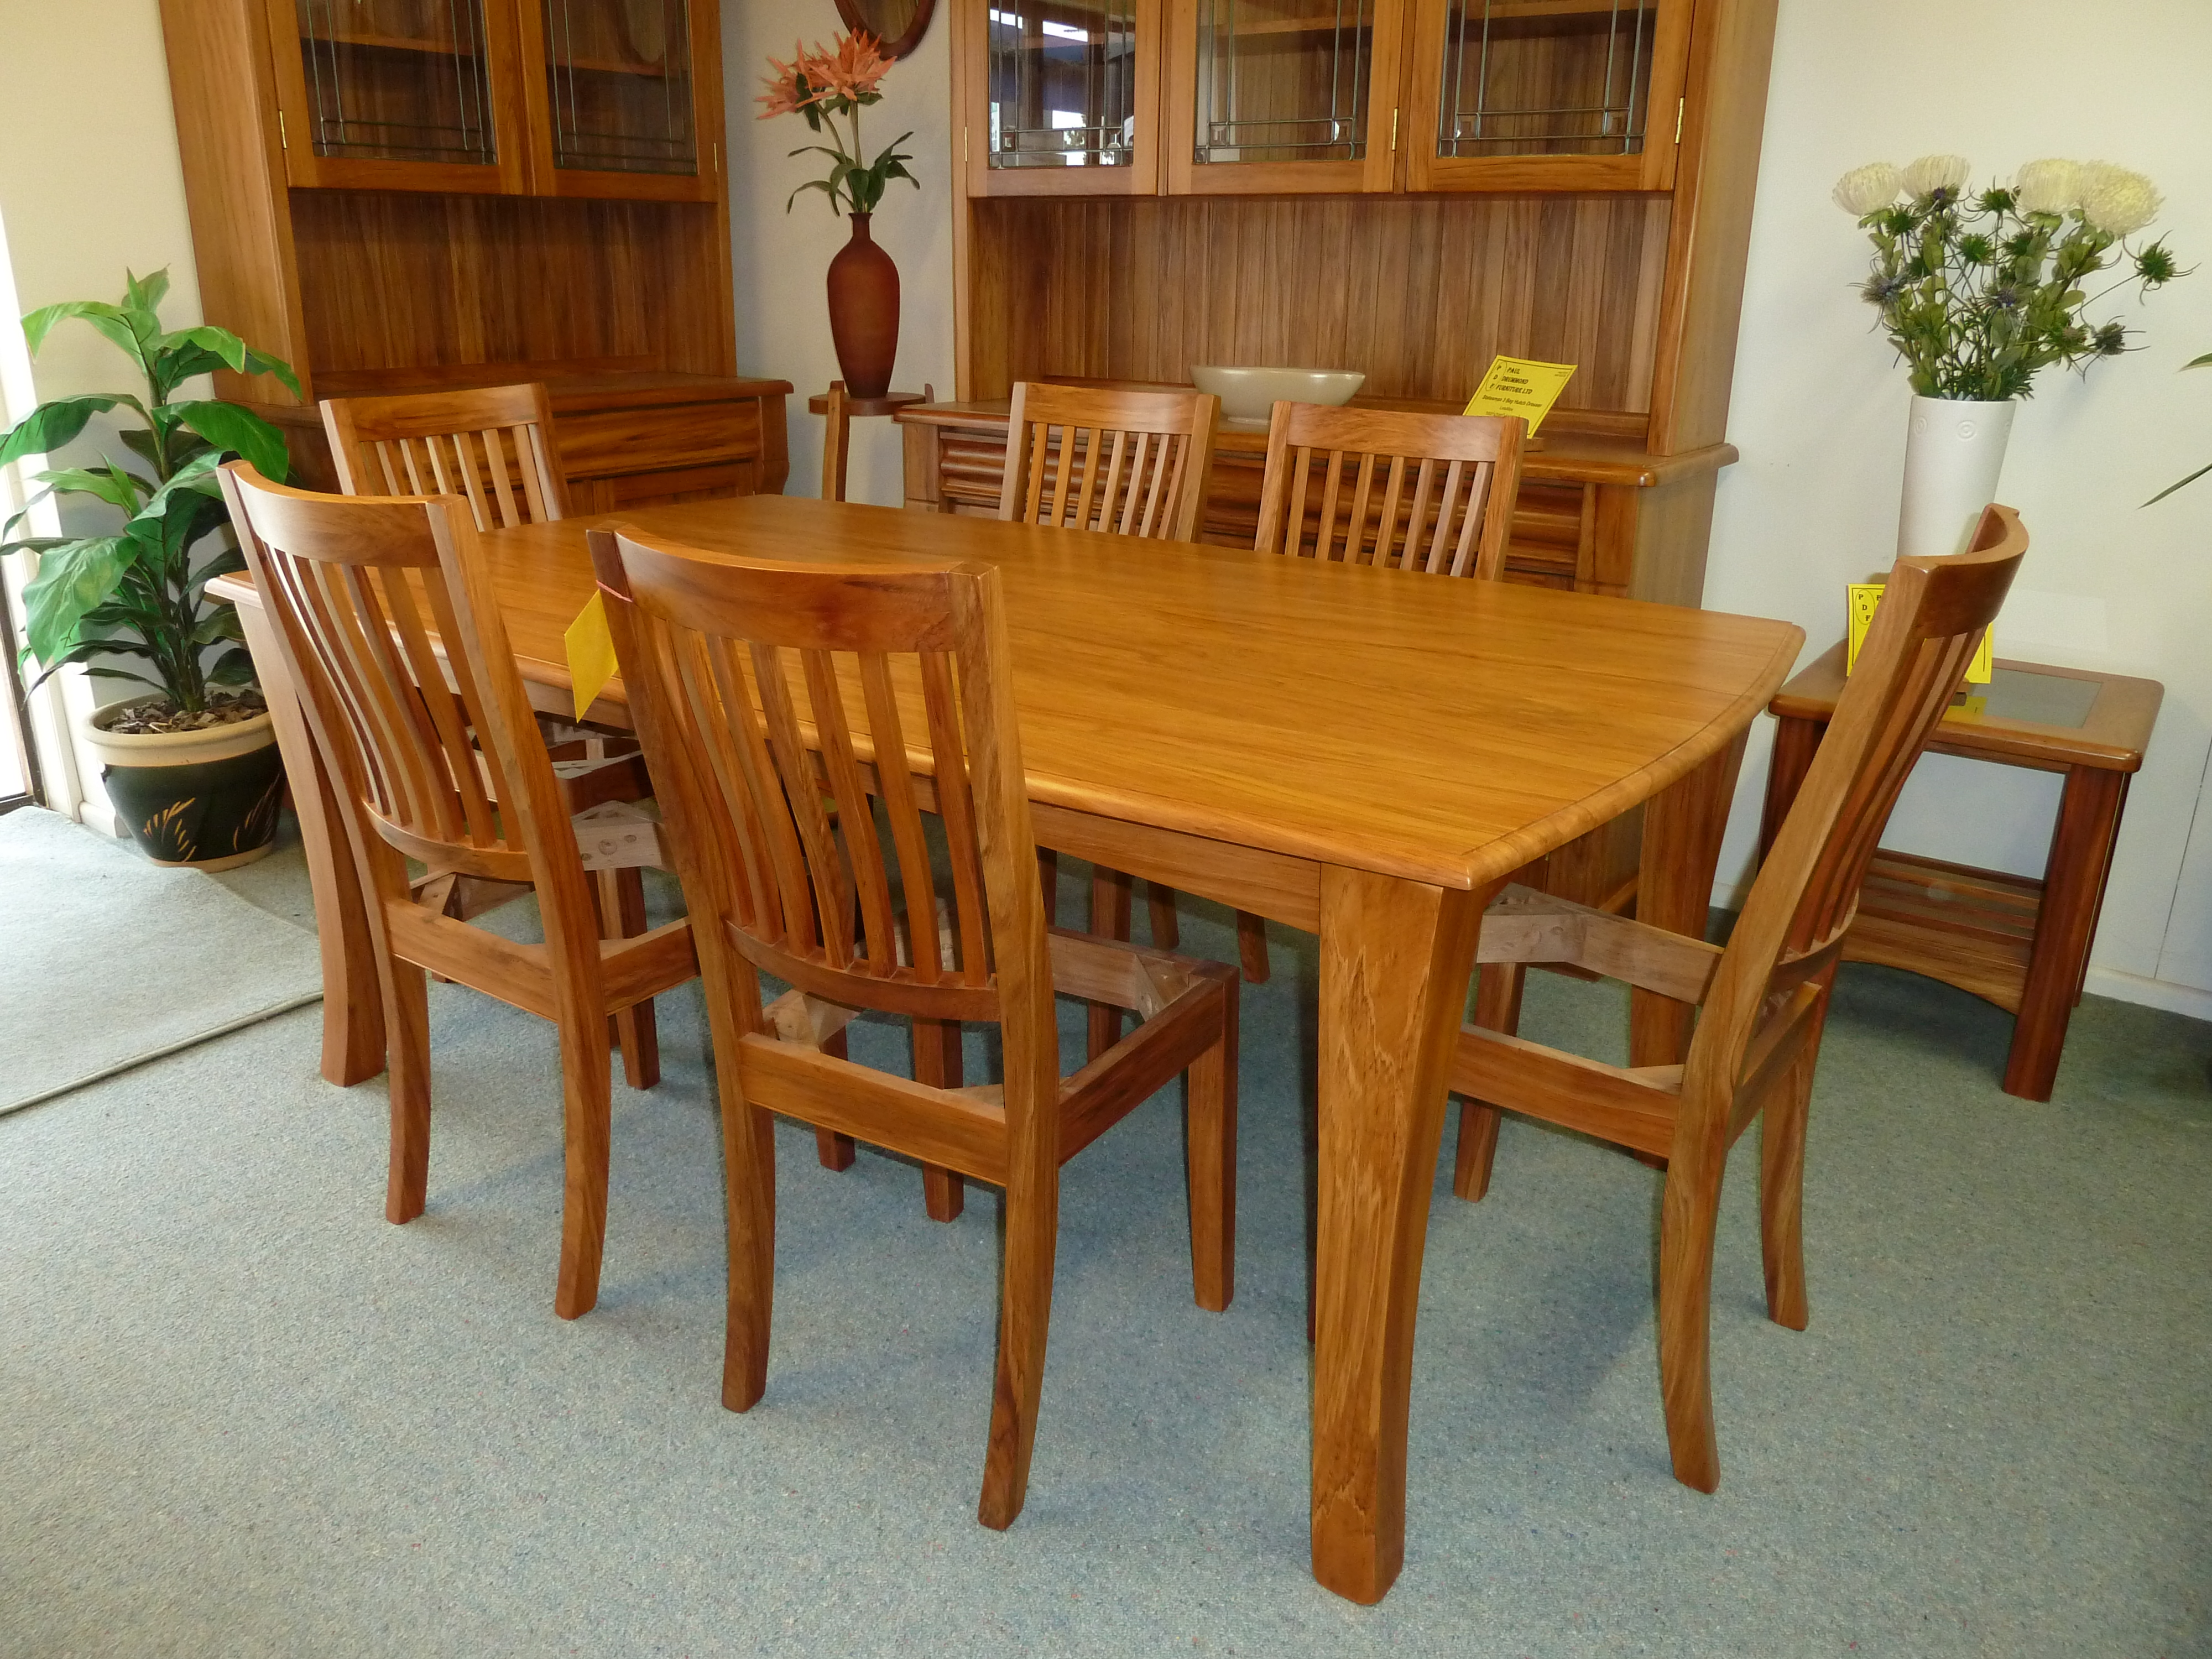 dining room chairs nz waiting vinyl furniture ranges archives rimu